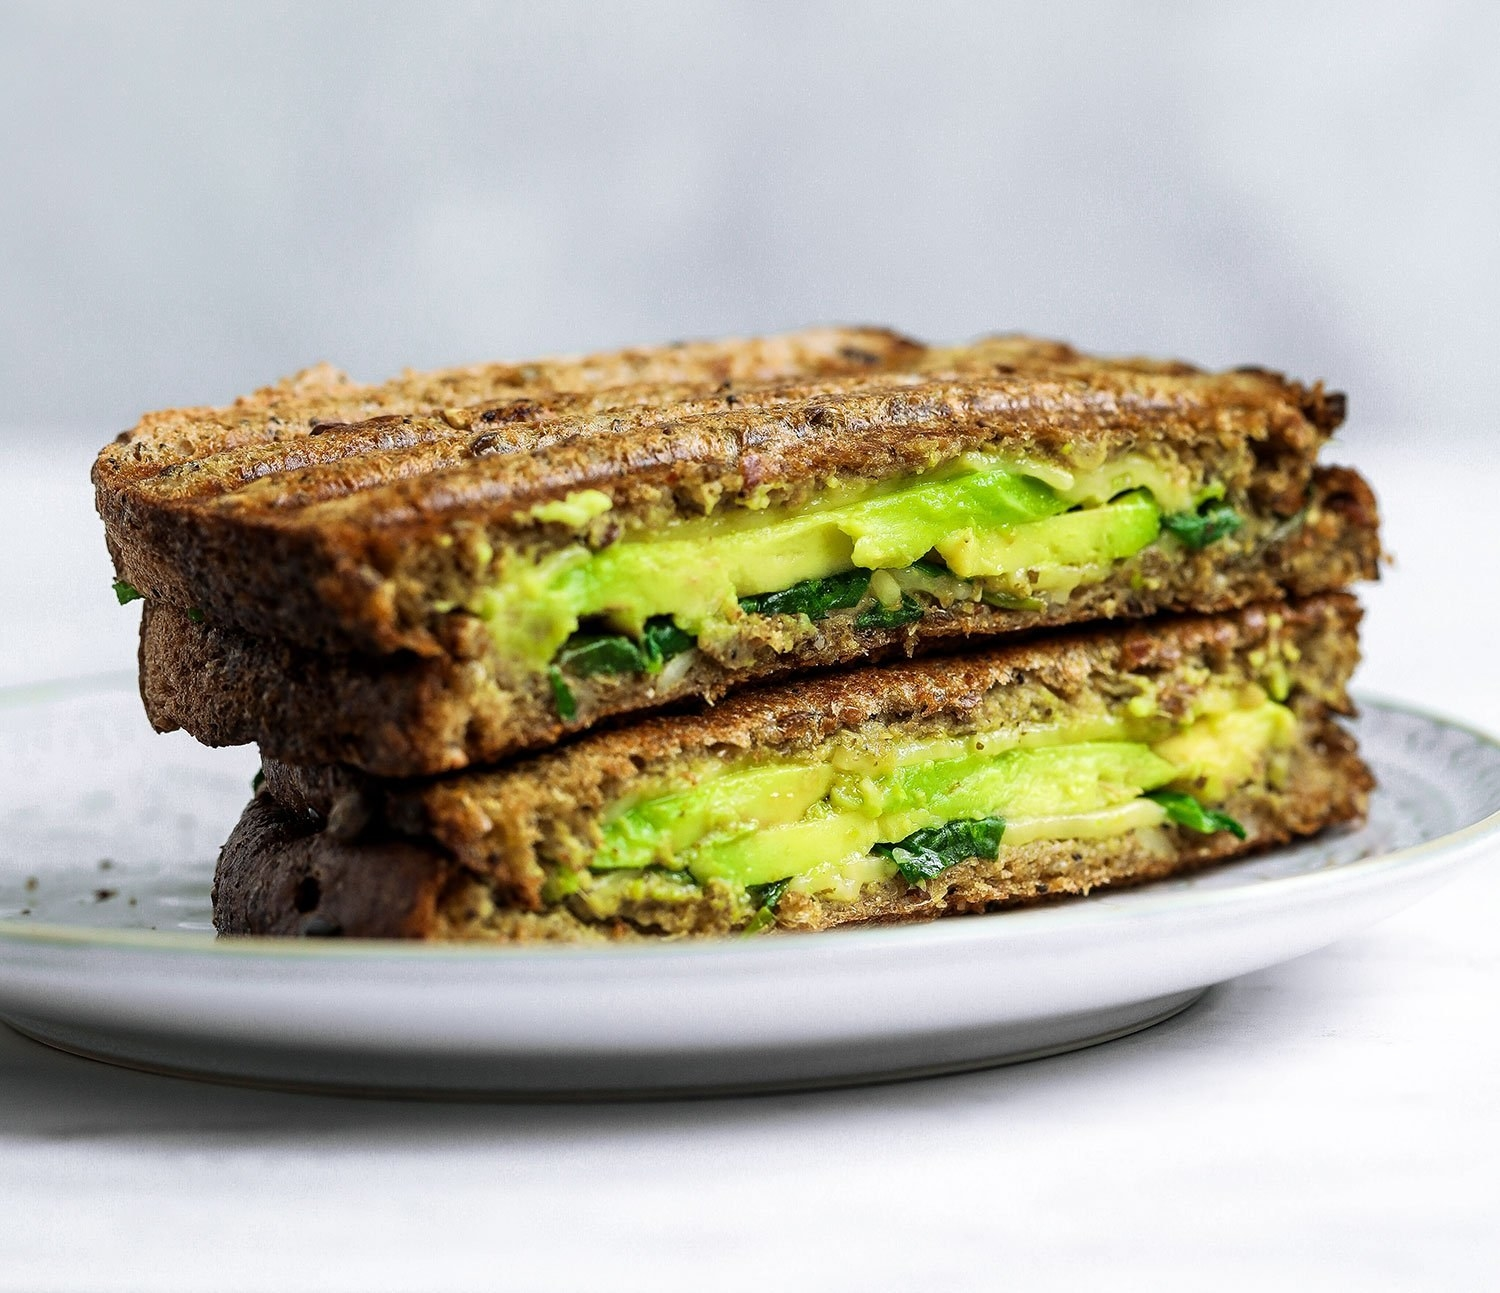 Why have a plain, ~regular~ grilled cheese when it could be loaded with greens and avocado, like in this recipe?